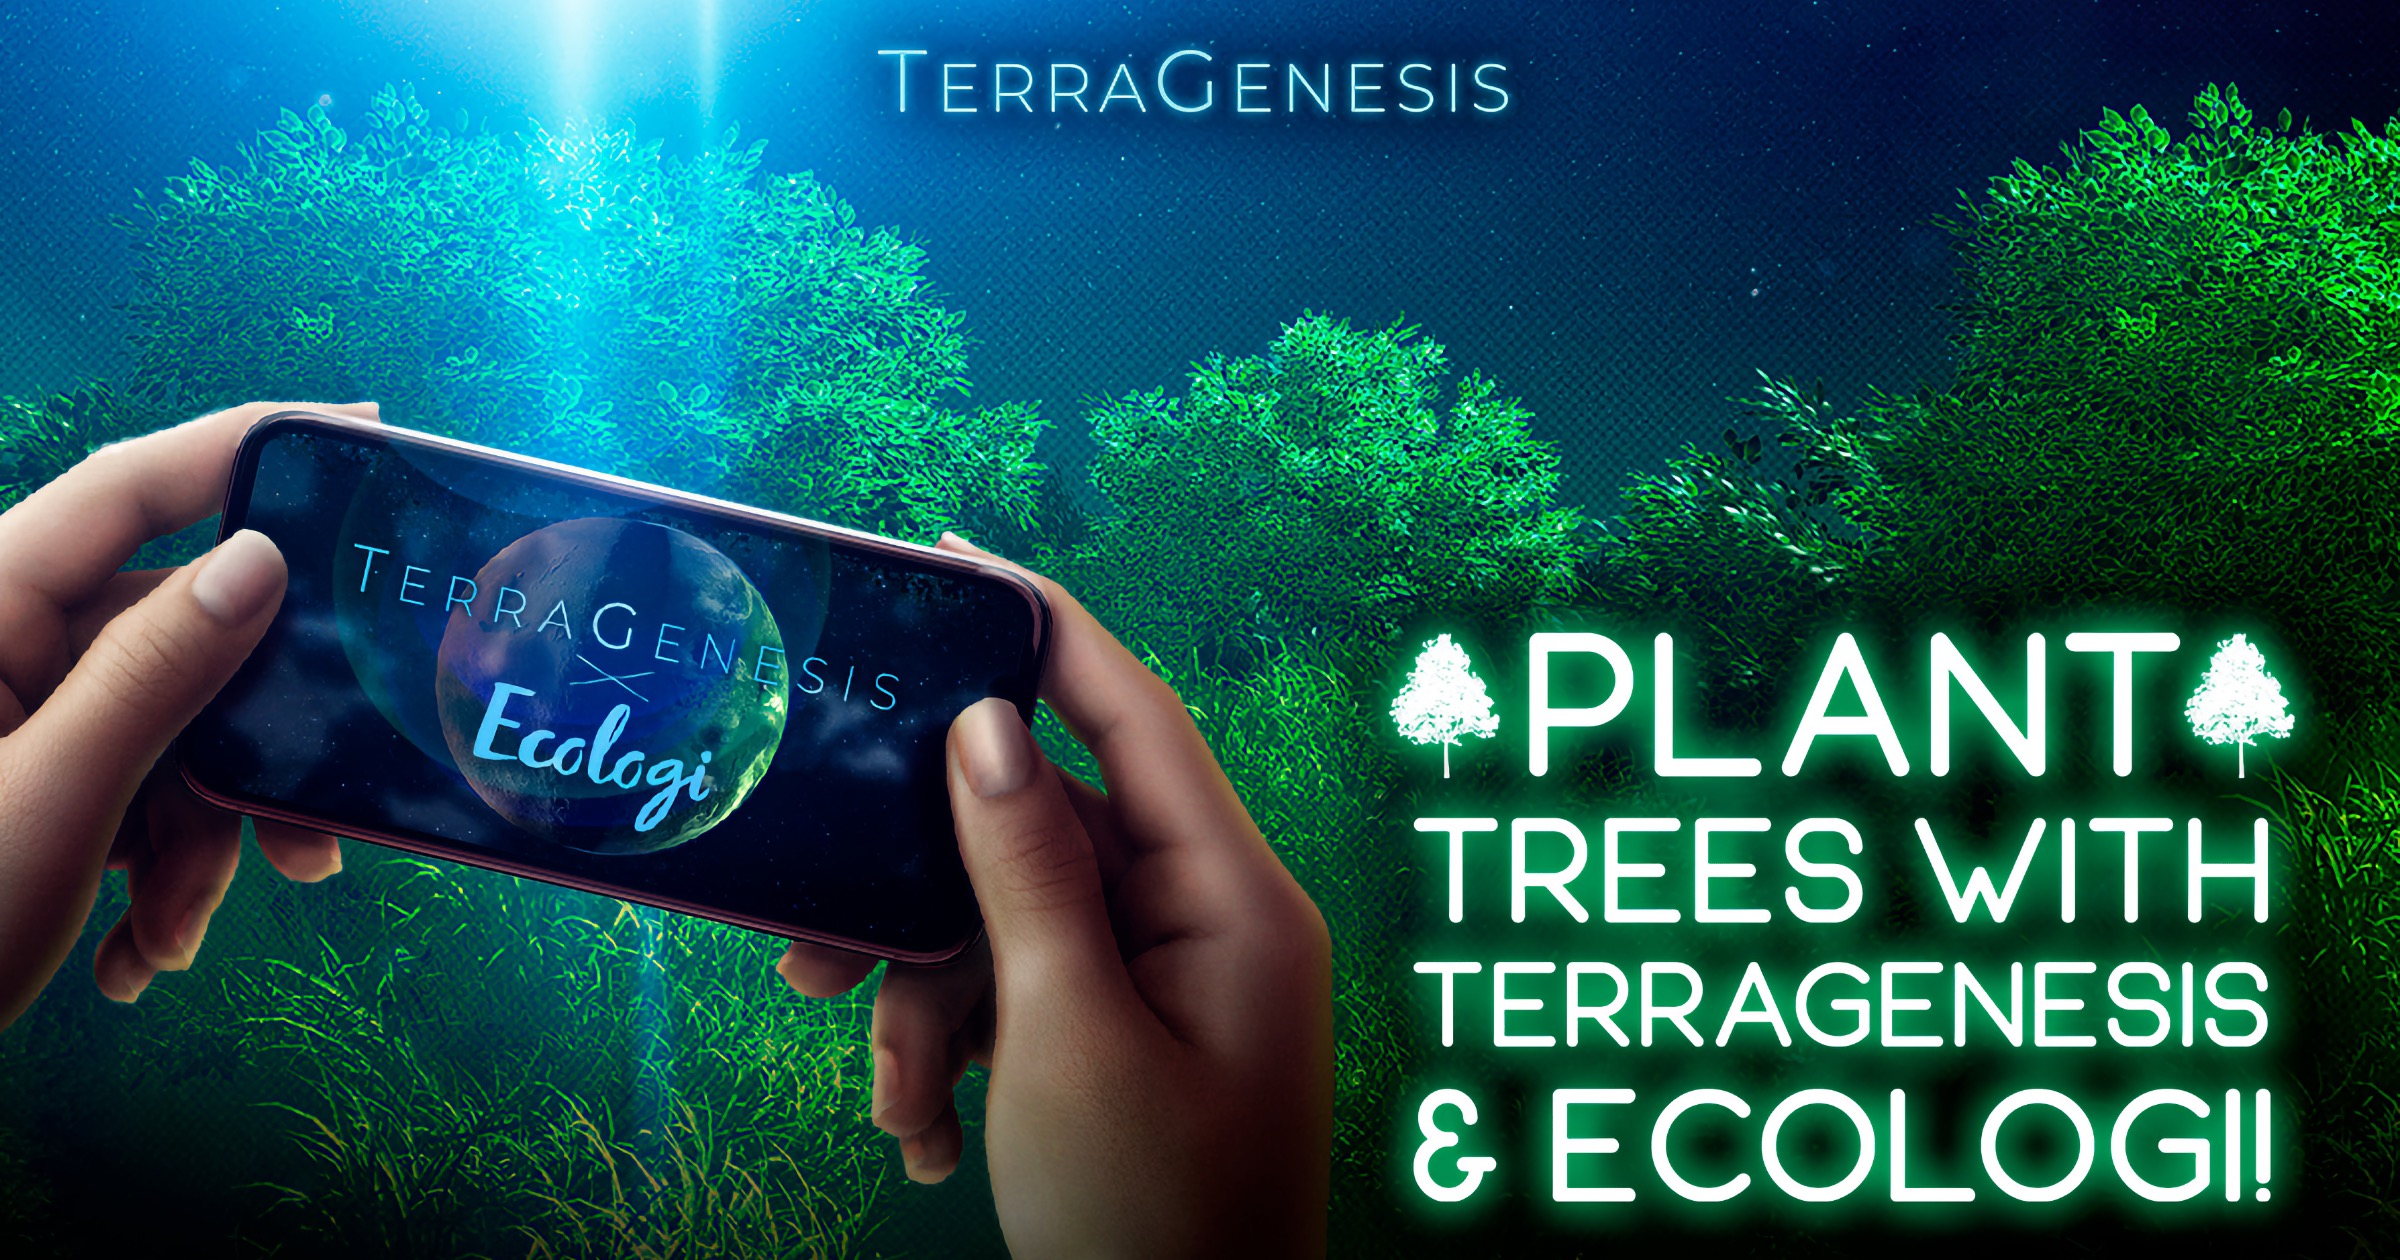 Plant Real Trees While Playing 'TerraGenesis' Space Game